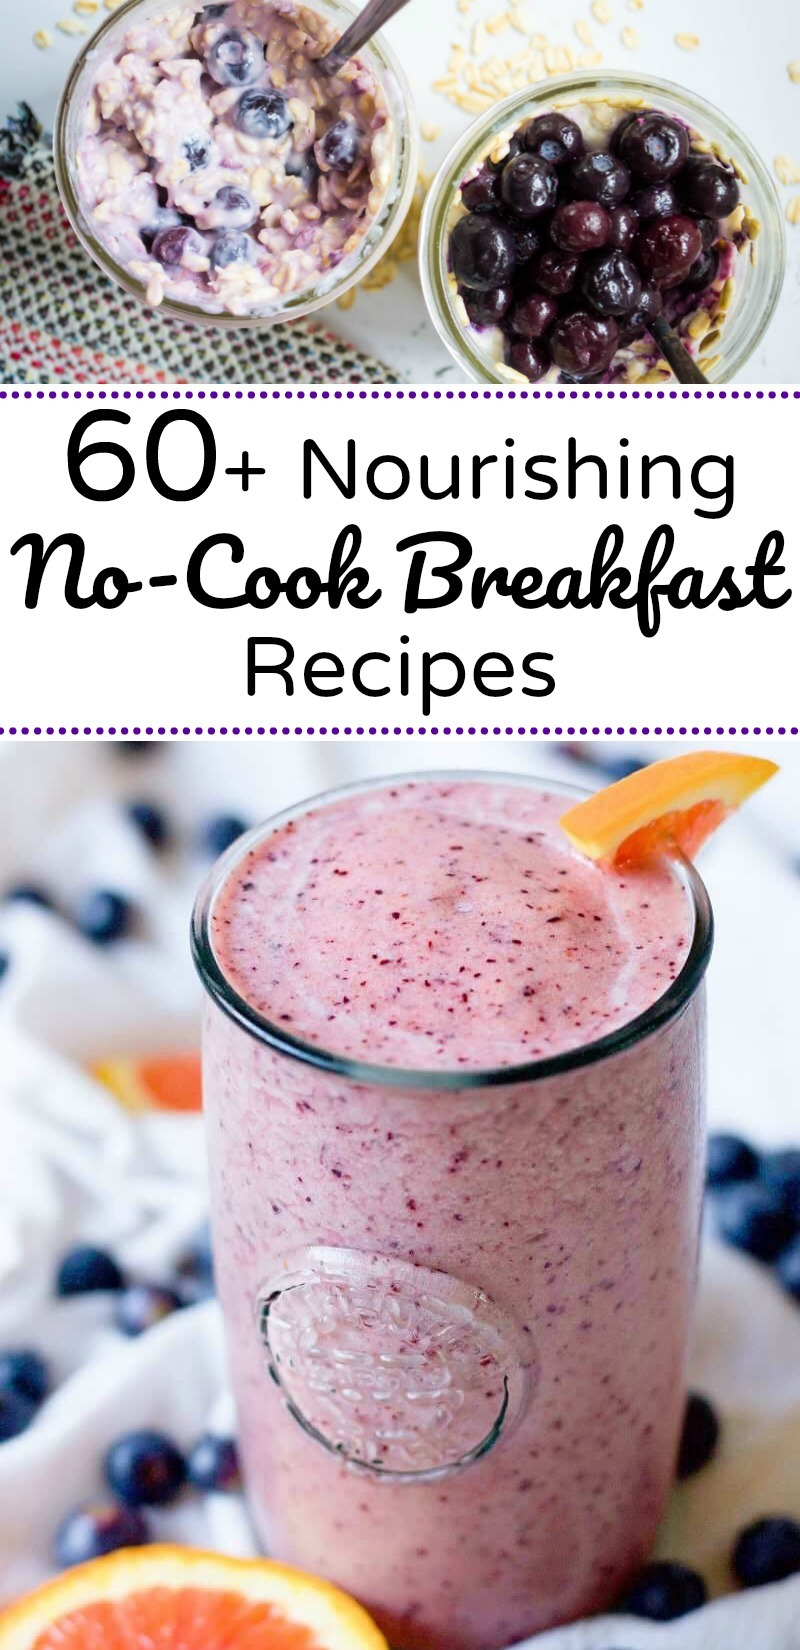 overnight oats and blueberry smoothie for nourishing no-cook breakfast recipes